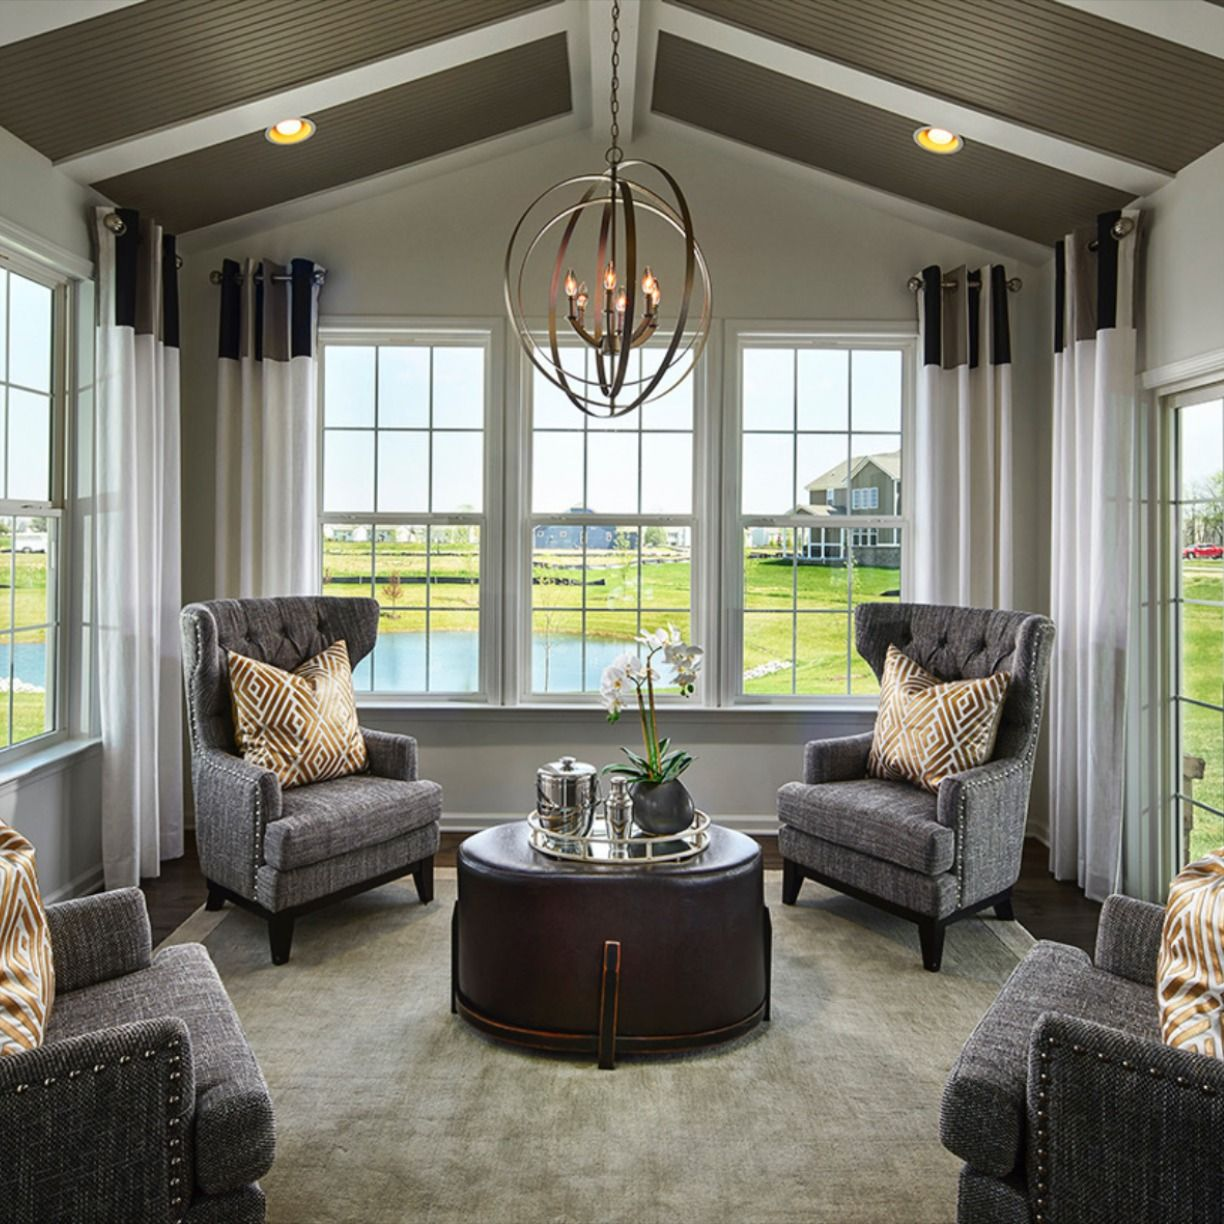 Transitional Living Room Design Features Neutral Gray Tones Plush Textures Ci Transitional Living Room Design Transitional Living Rooms Living Room Designs #neutral #transitional #living #room